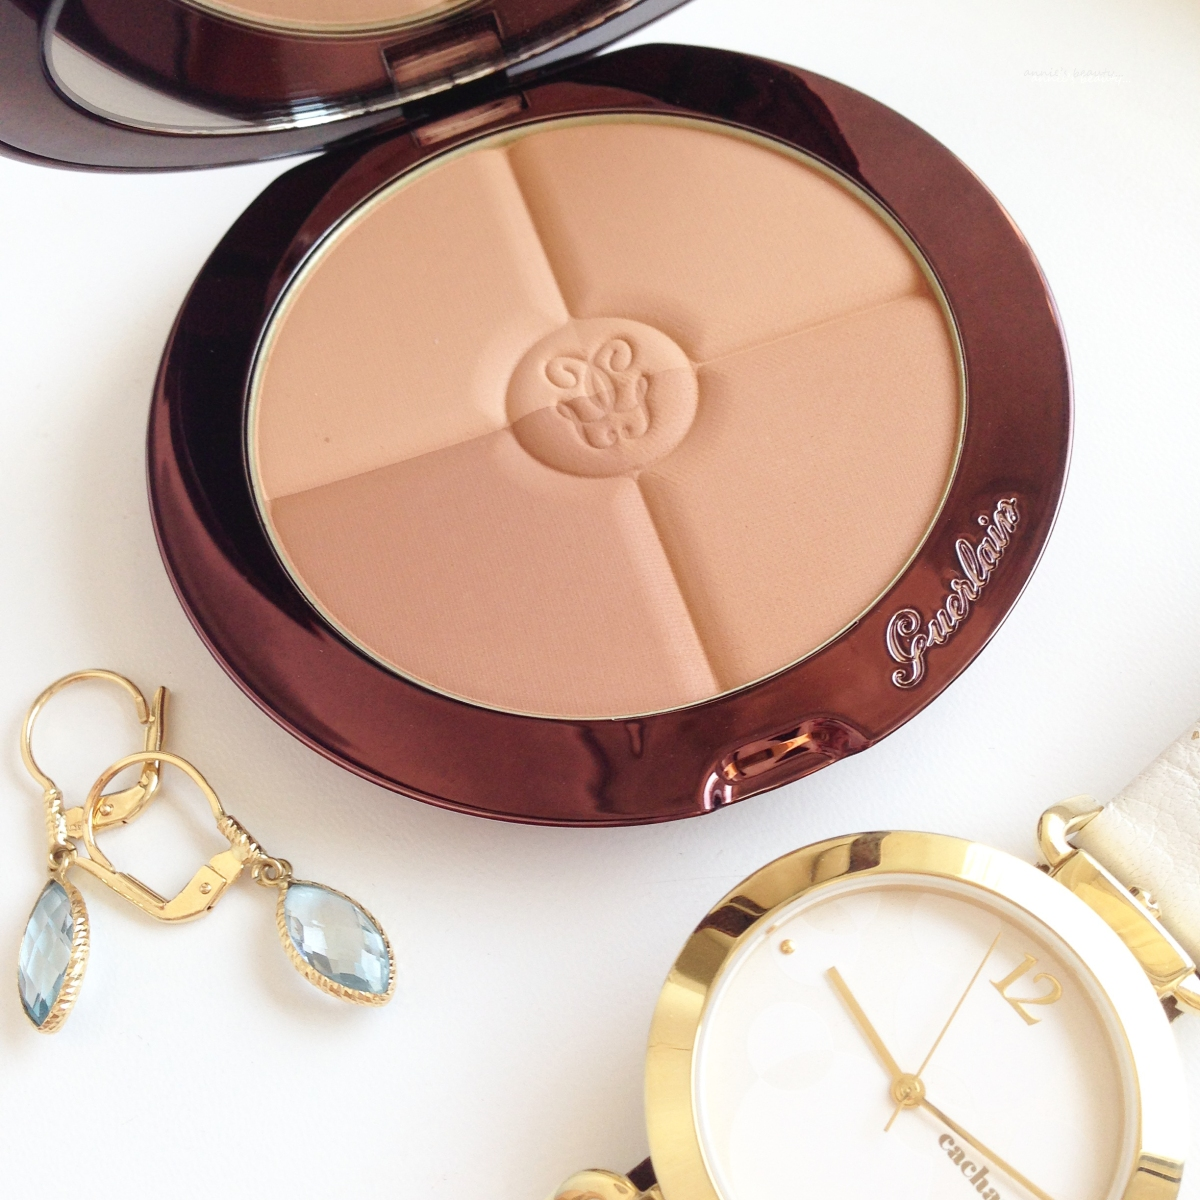 Guerlain Terracotta Bronzers Collection: the Terracotta 4 Seasons, the Terracotta Light and the Terracotta Sun Celebration 30th Anniversary Limited Edition